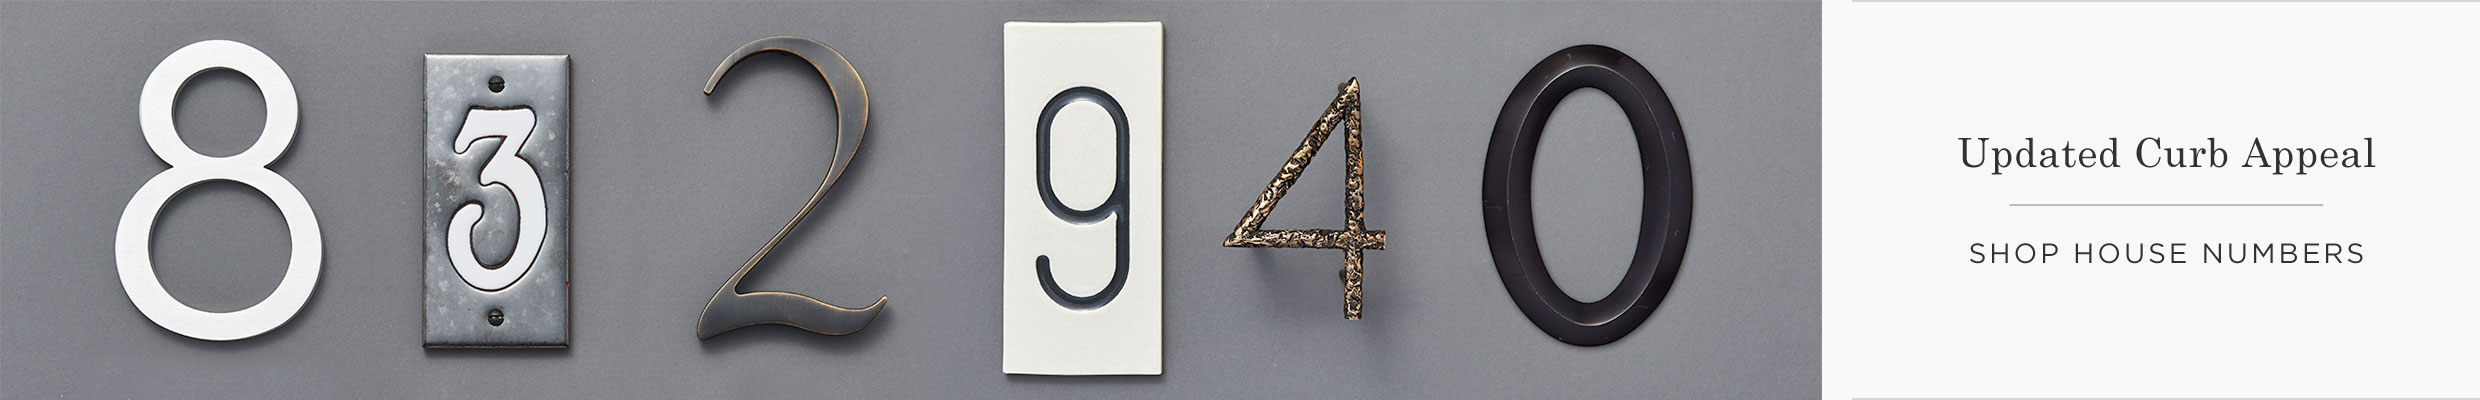 Shop House Numbers